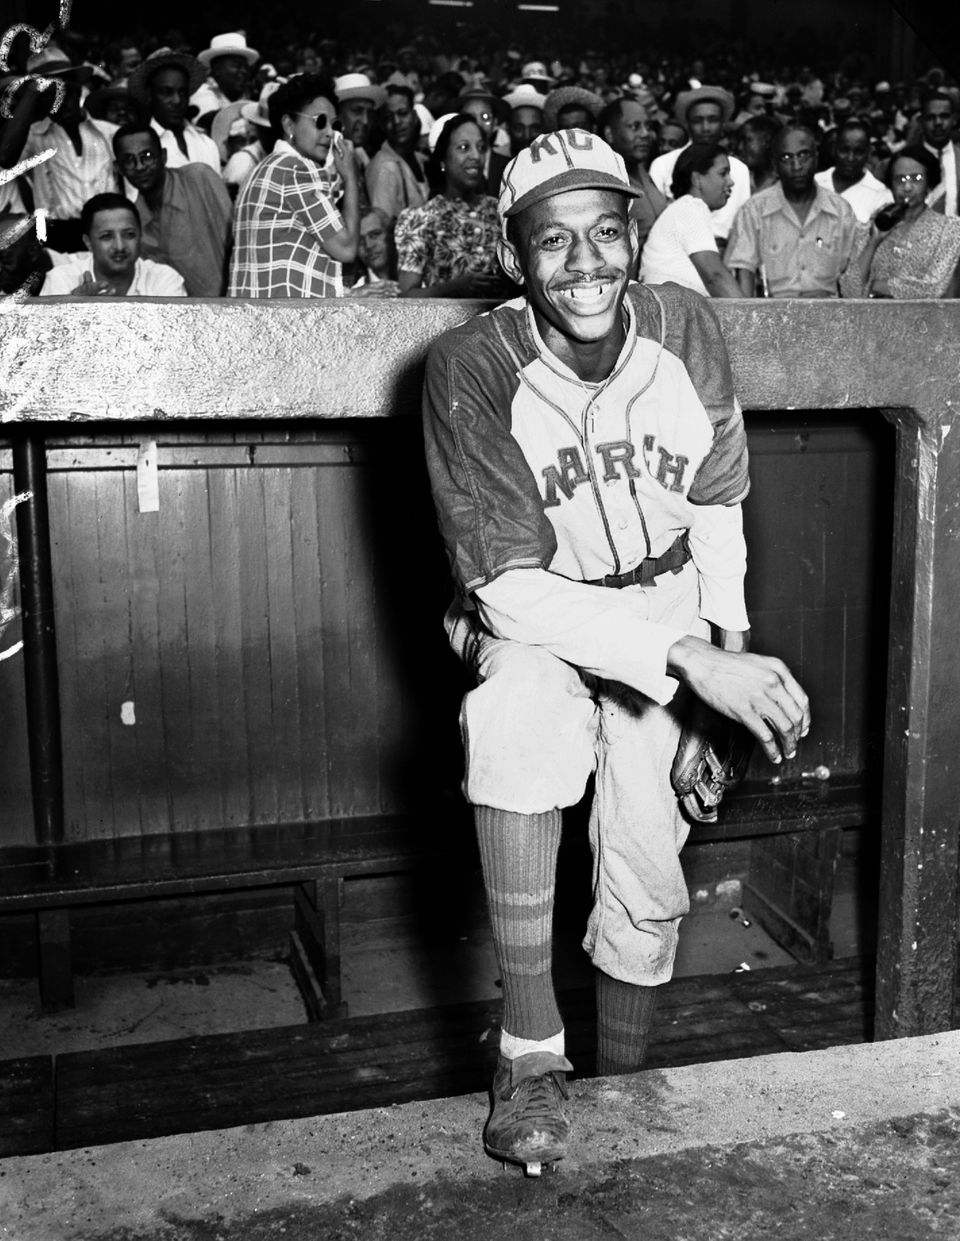 Kansas City Monarchs pitching great Leroy Satchel Paige poses in the dugout at New York's Yankee Stadium August 2, 1942 for a